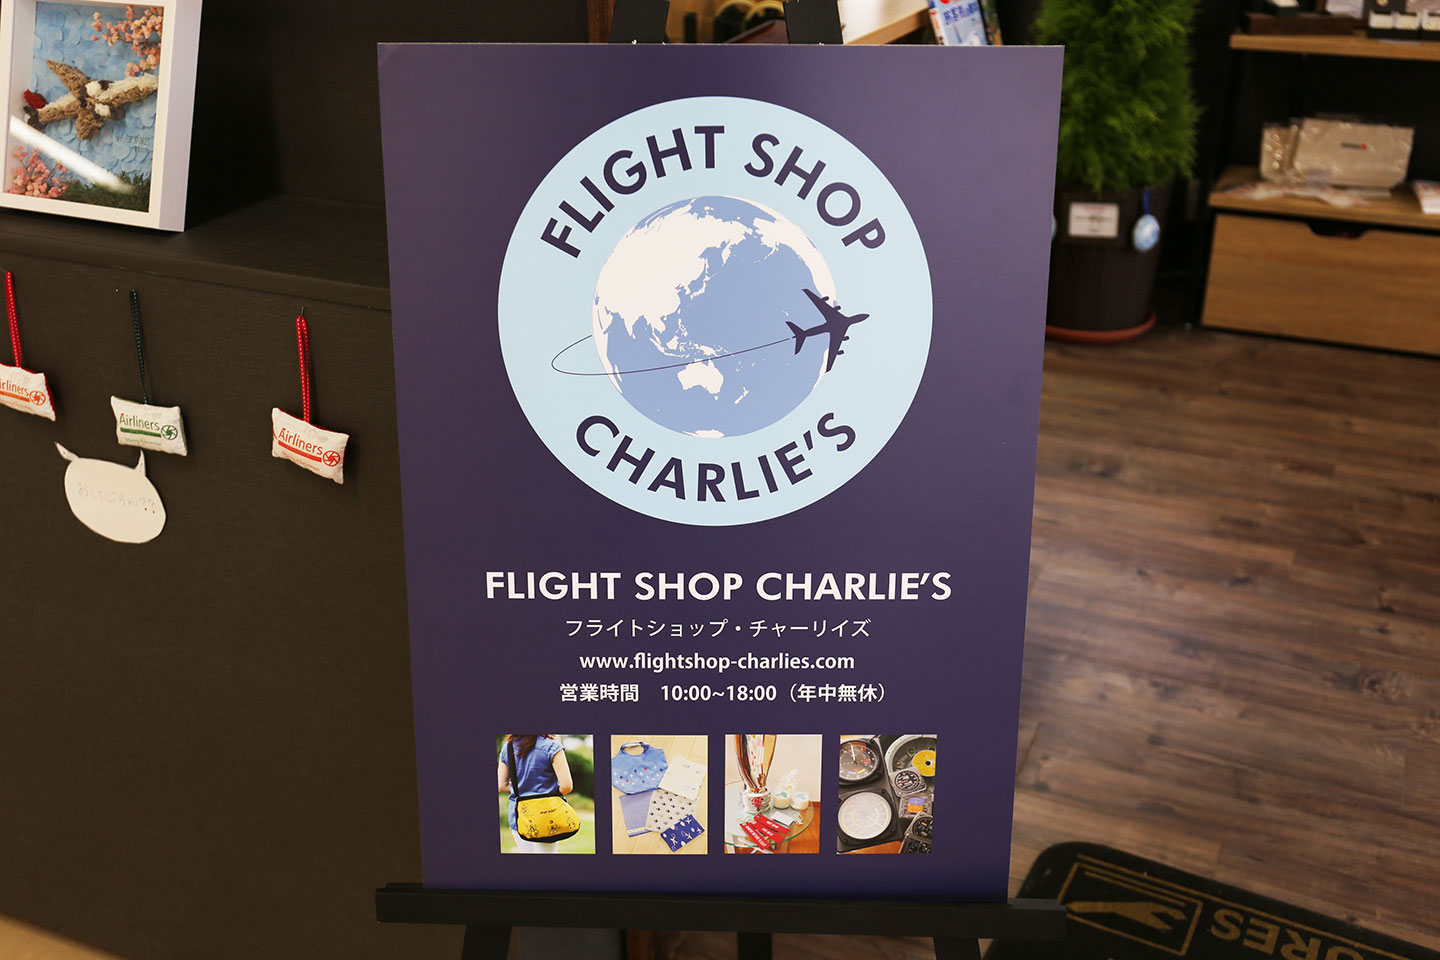 FLIGHT SHOP CHARLIE'S